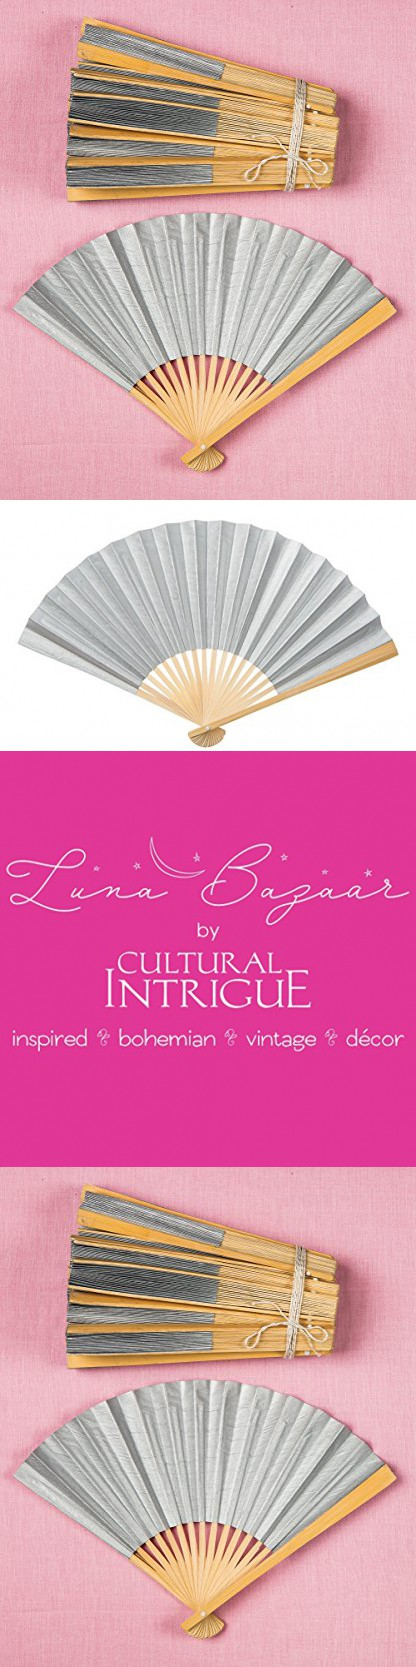 Luna Bazaar Handheld Folding Paper Fans (9-Inch, Platinum Silver, Set of 20) - In the Style of Chinese, Japanese, Spanish Fans - For Personal Use and Weddings